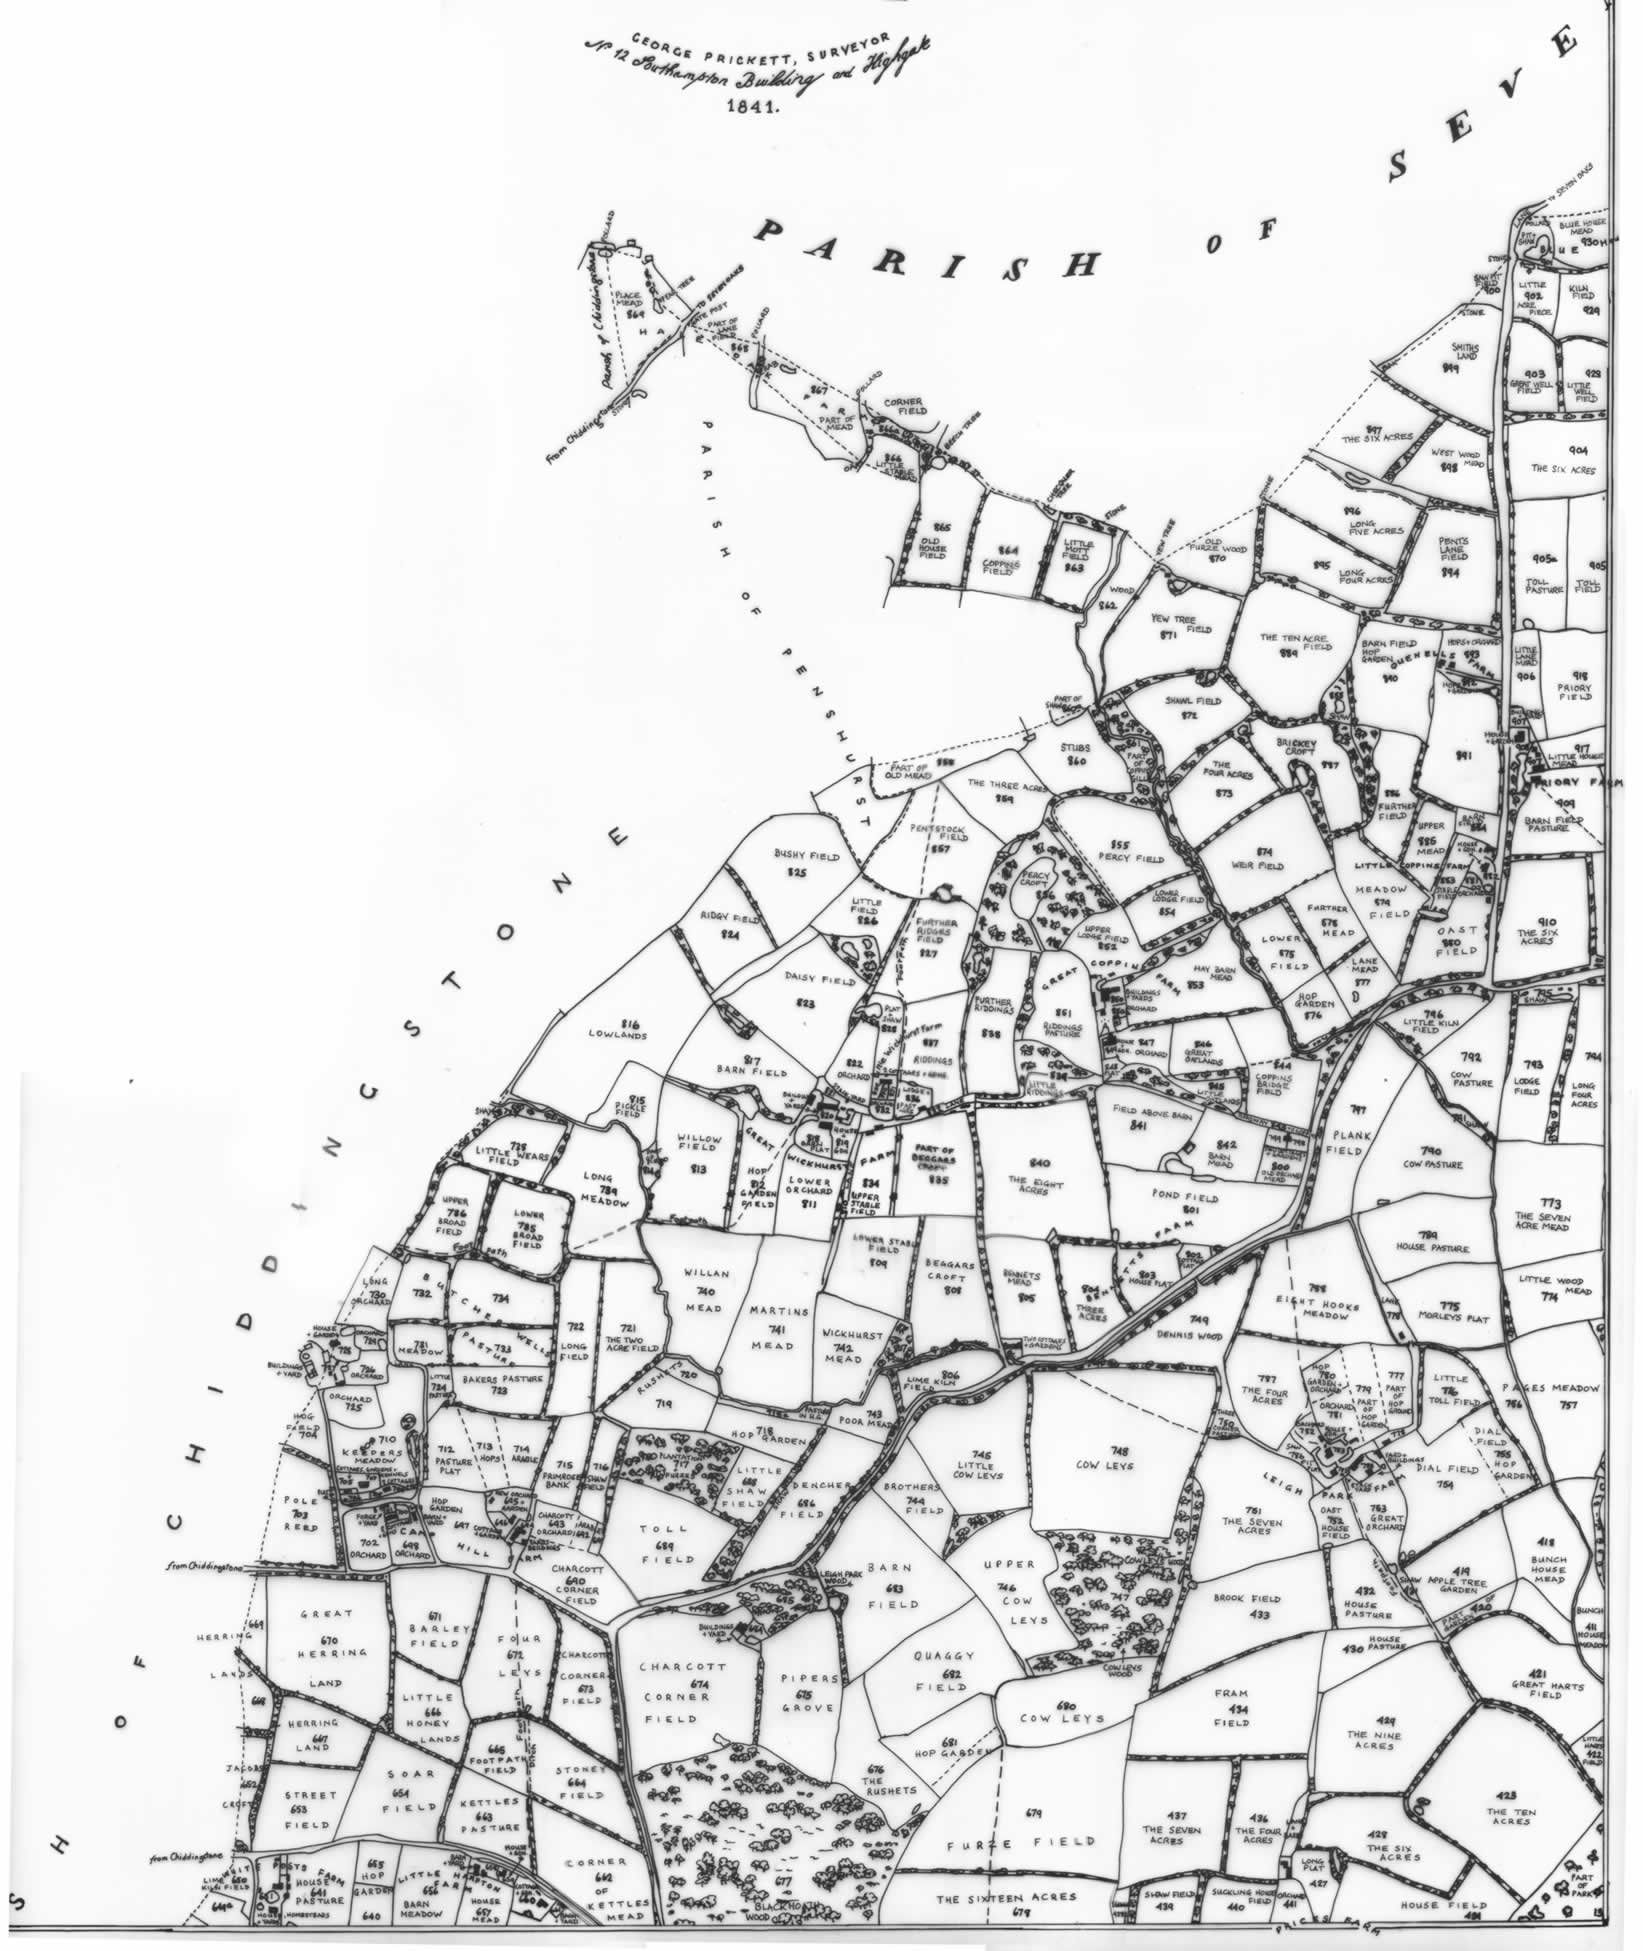 Tithe map, 1841, north-west quarter